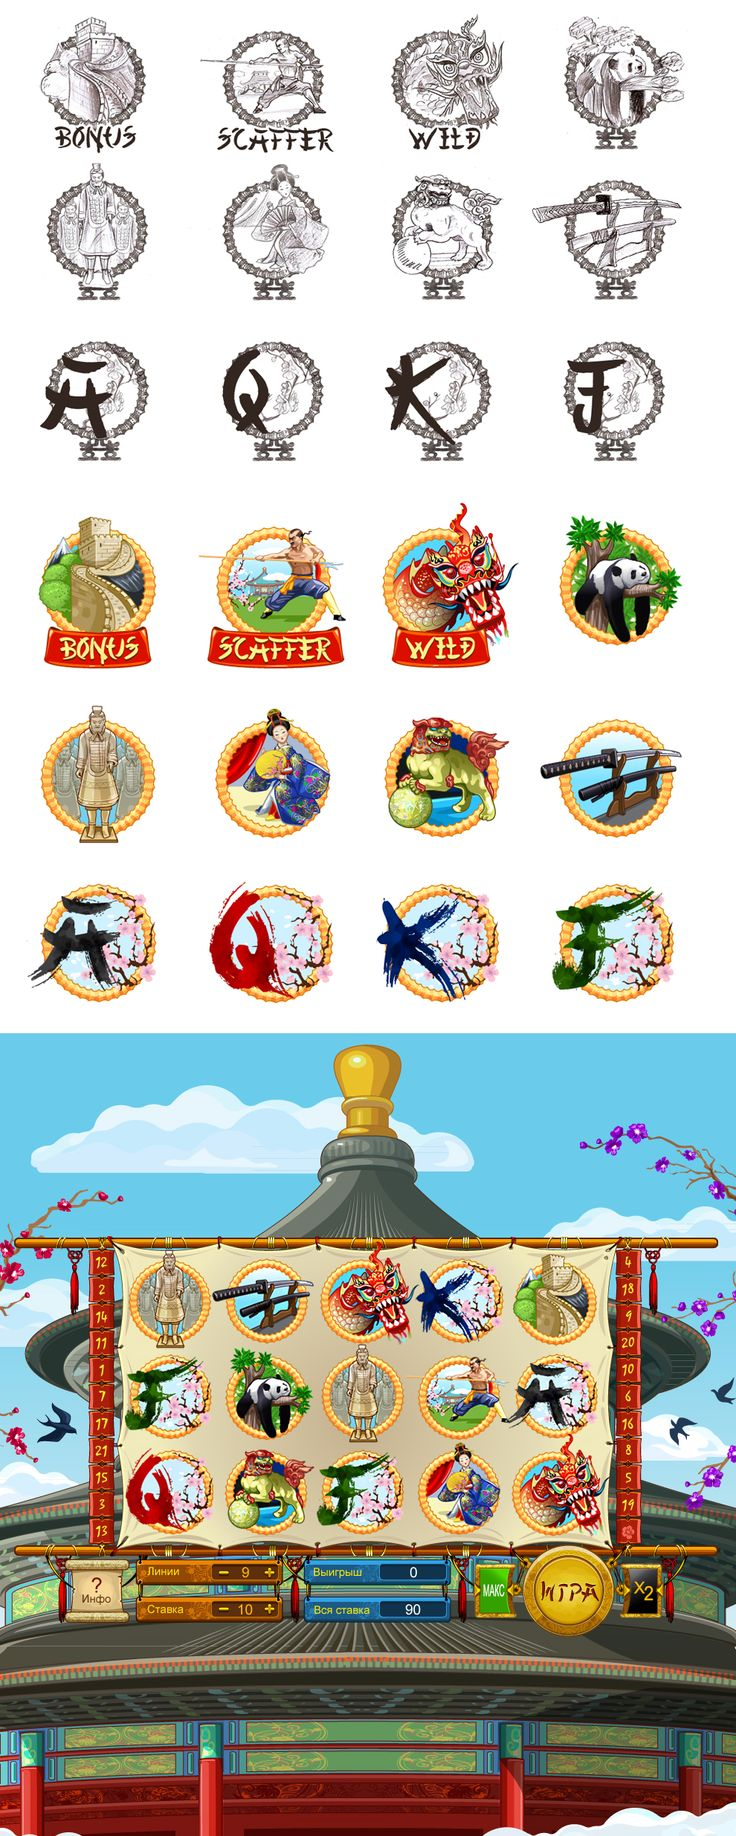 "Graphic design of icons, objects, cards and interface for the game slot-machine ""China"" http://slotopaint.com"